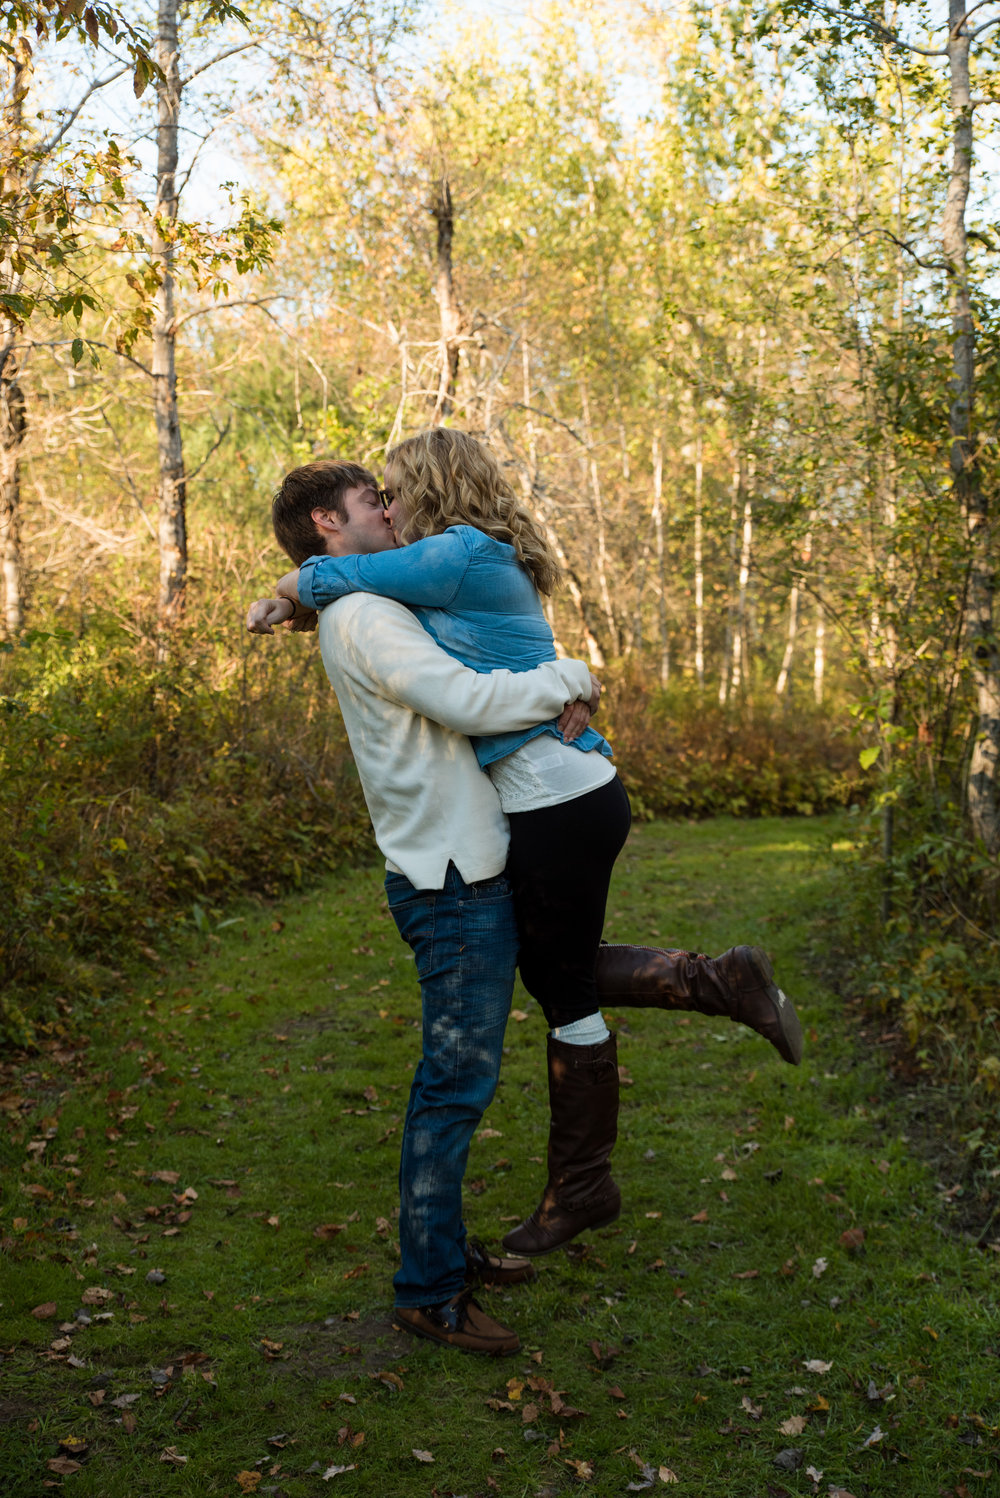 Riverbend Farm engagement photos in Uxbridge, MA photographed by Kara Emiy Krantz Photography